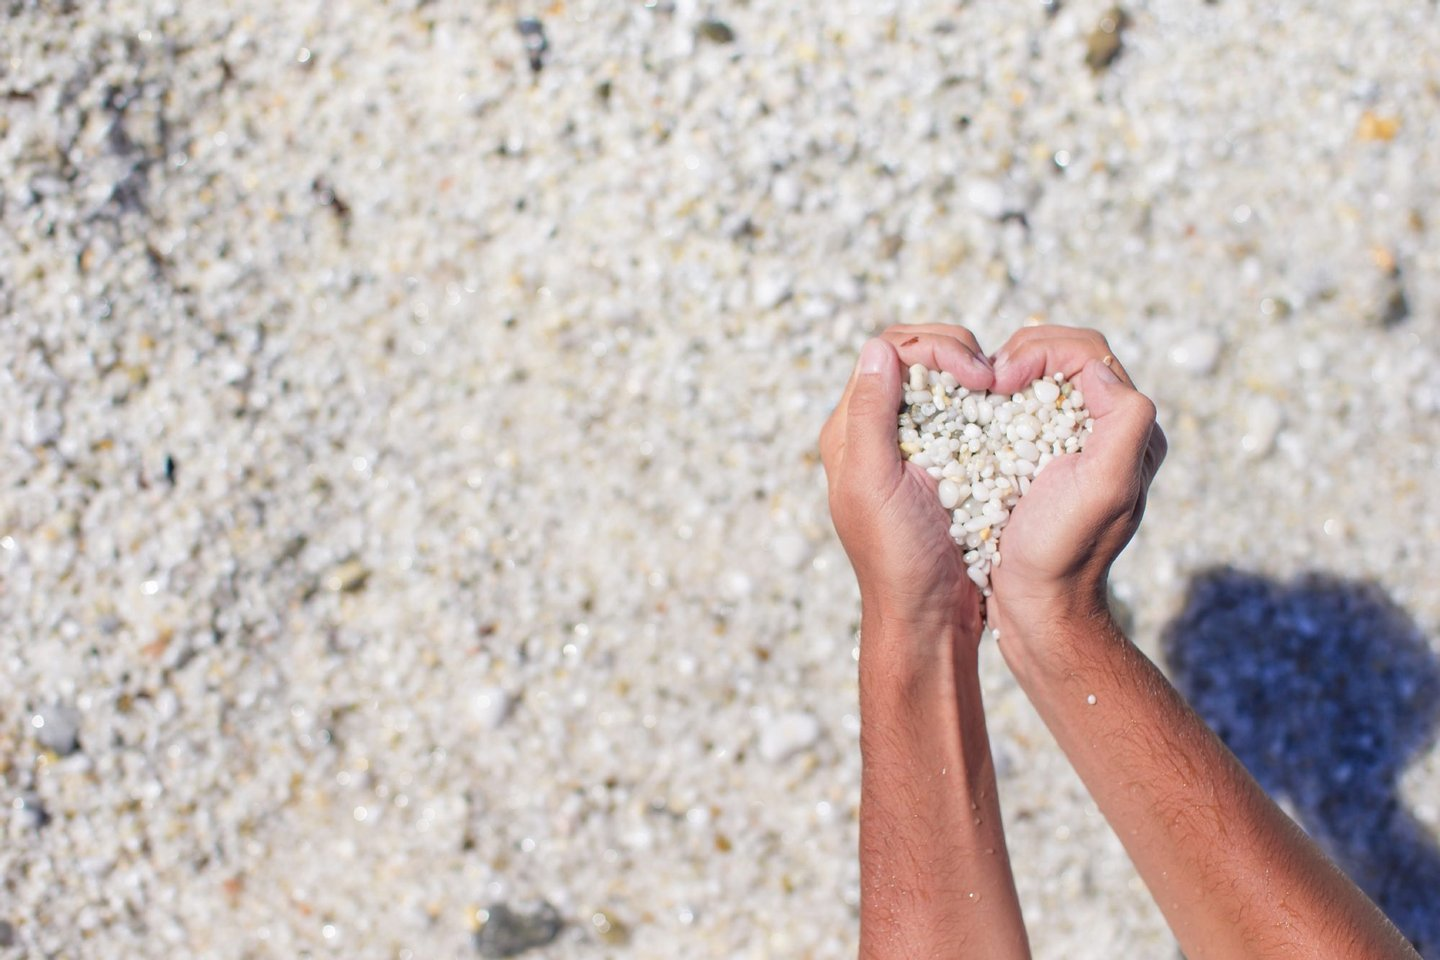 beach, heart, white, love, symbol, body part, pebbles, gravel, coastline, exotic, expression, expressive, feeling, horizontal, finger, hand, macro, outdoor, romantic, sand, summer, tropical, turquoise, vacation, valentine, heart shape, hands, sign, holiday, picture, card, human, destination, kiss, celebration, handmade, 14, lover, touching, decorative, body, woman, color, colorful, joy, valentines, getaway, part, romance, february,